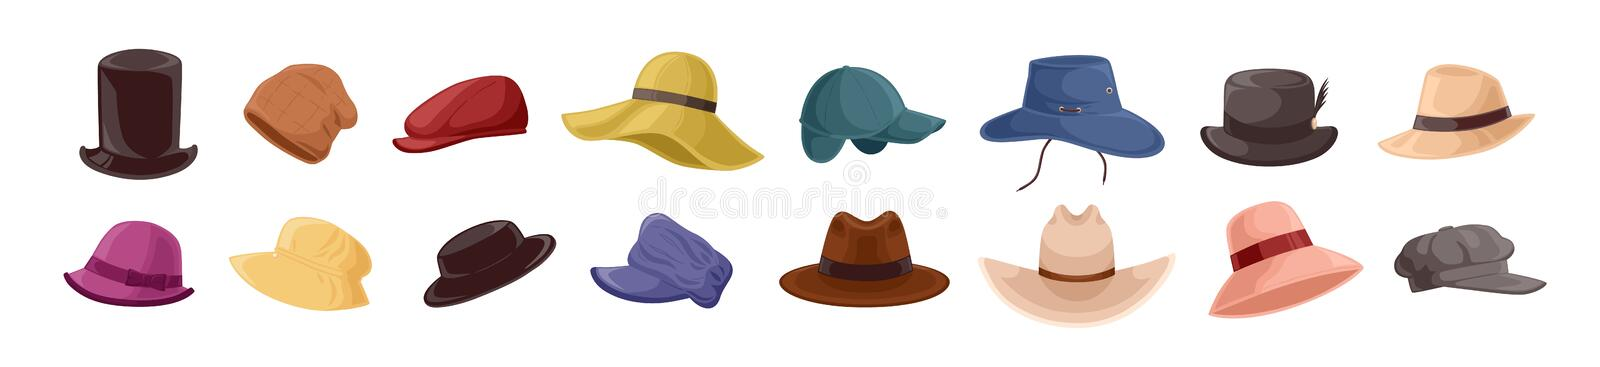 Collection of stylish men s and women s headwear of various types - hats, caps, kepi isolated on white background vector illustration